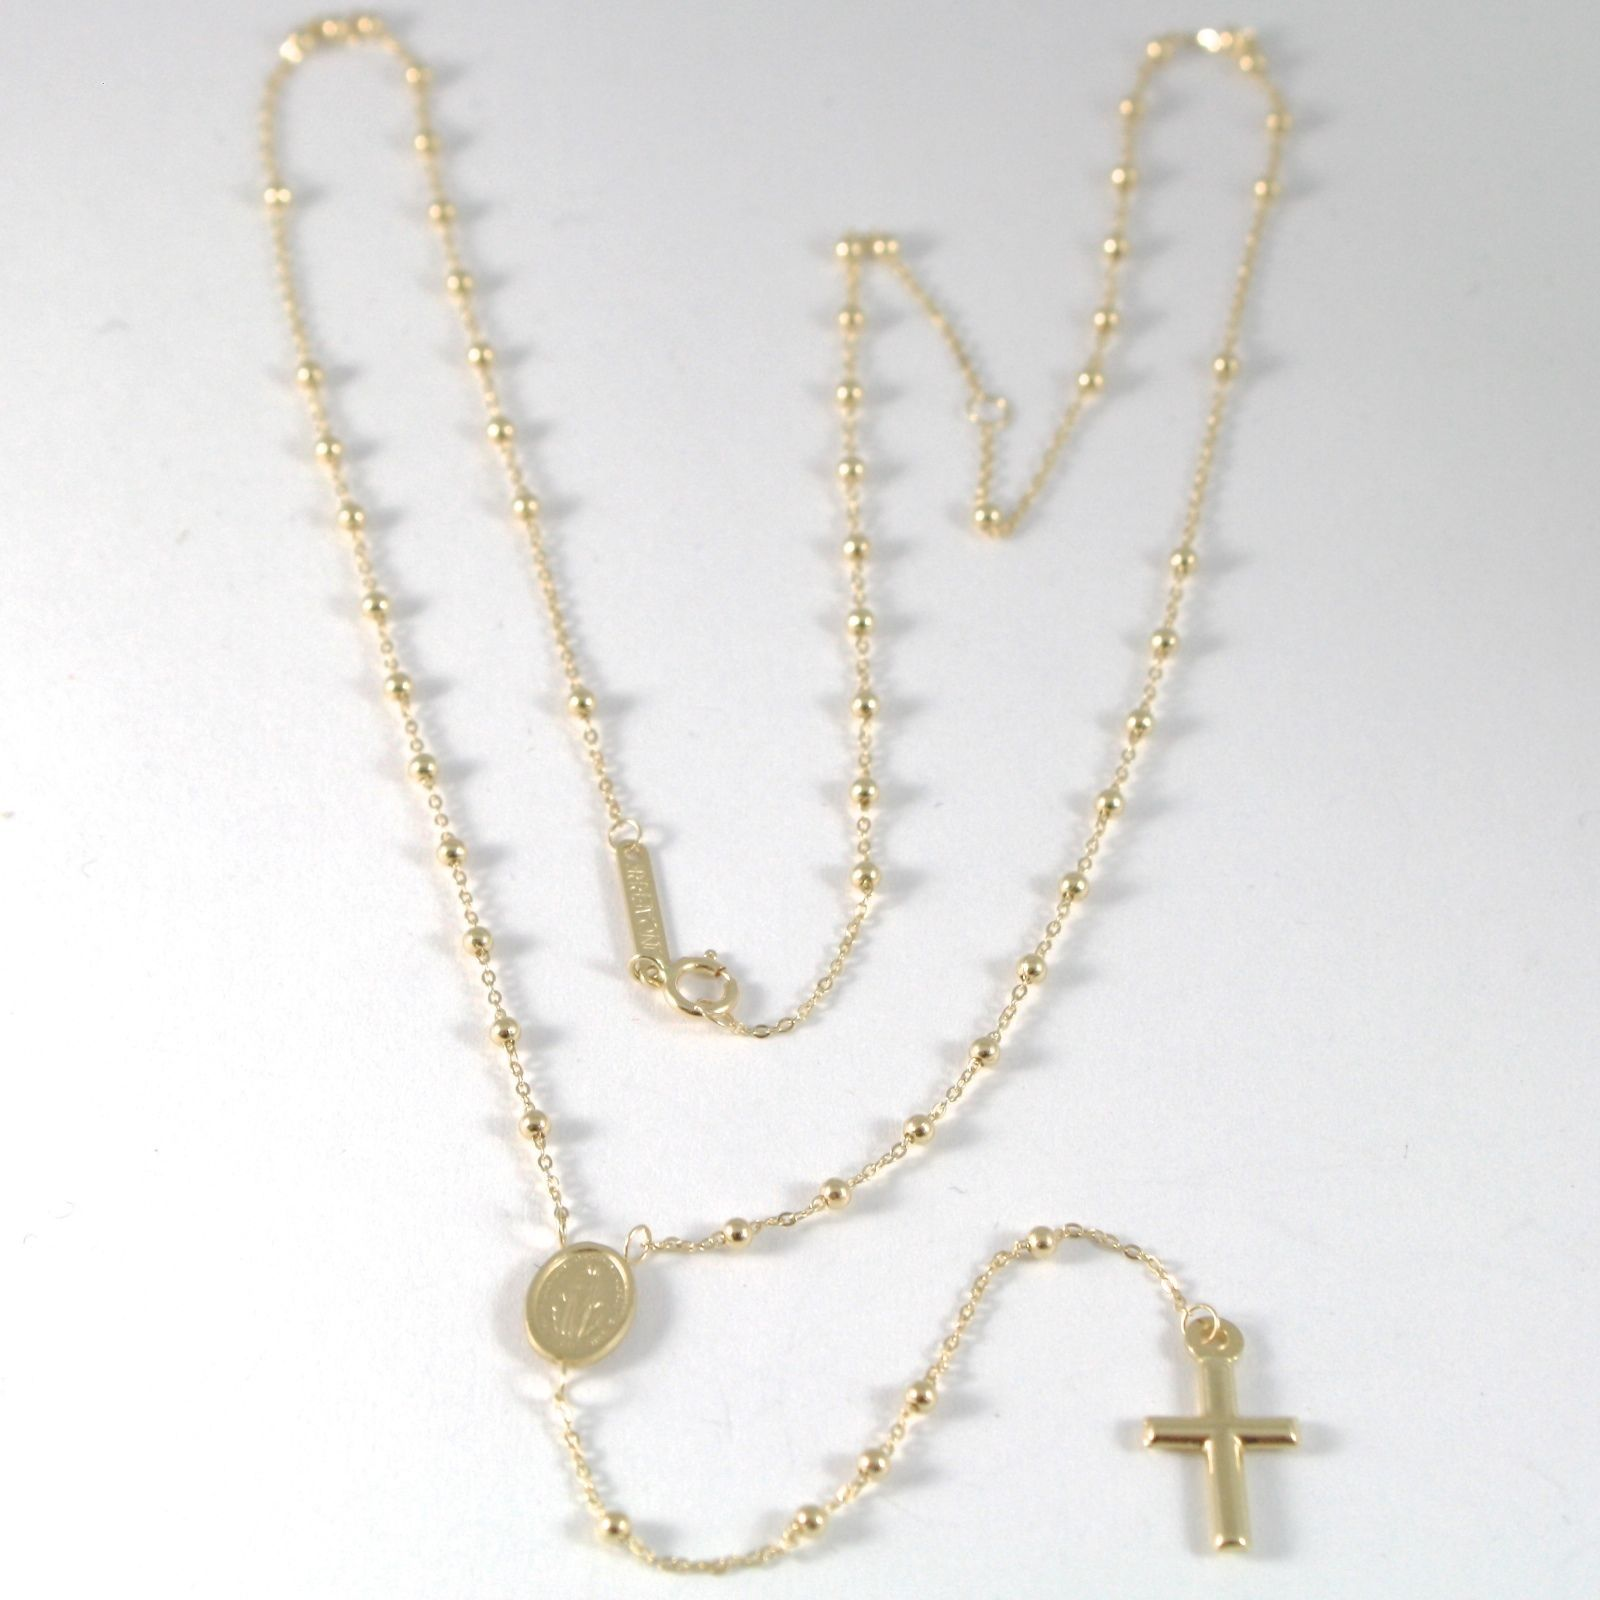 NECKLACE ROSARY YELLOW GOLD 750 - 18K MEDAL MIRACULOUS, CROSS, 47 CM, ITALY